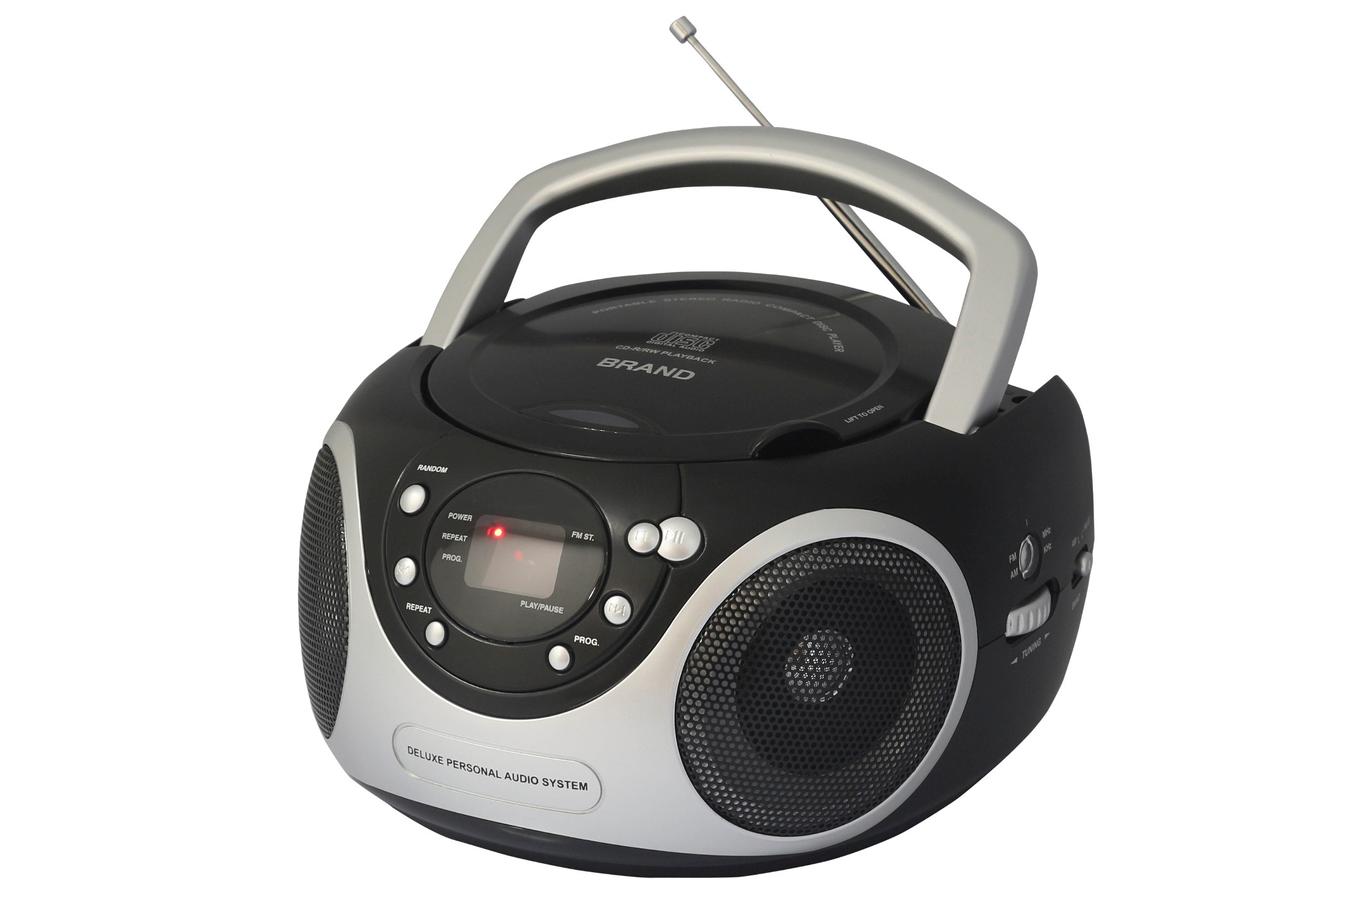 poste radio cd poste radio portable radio cd vcd cassette radio cd poste radio cd philips. Black Bedroom Furniture Sets. Home Design Ideas